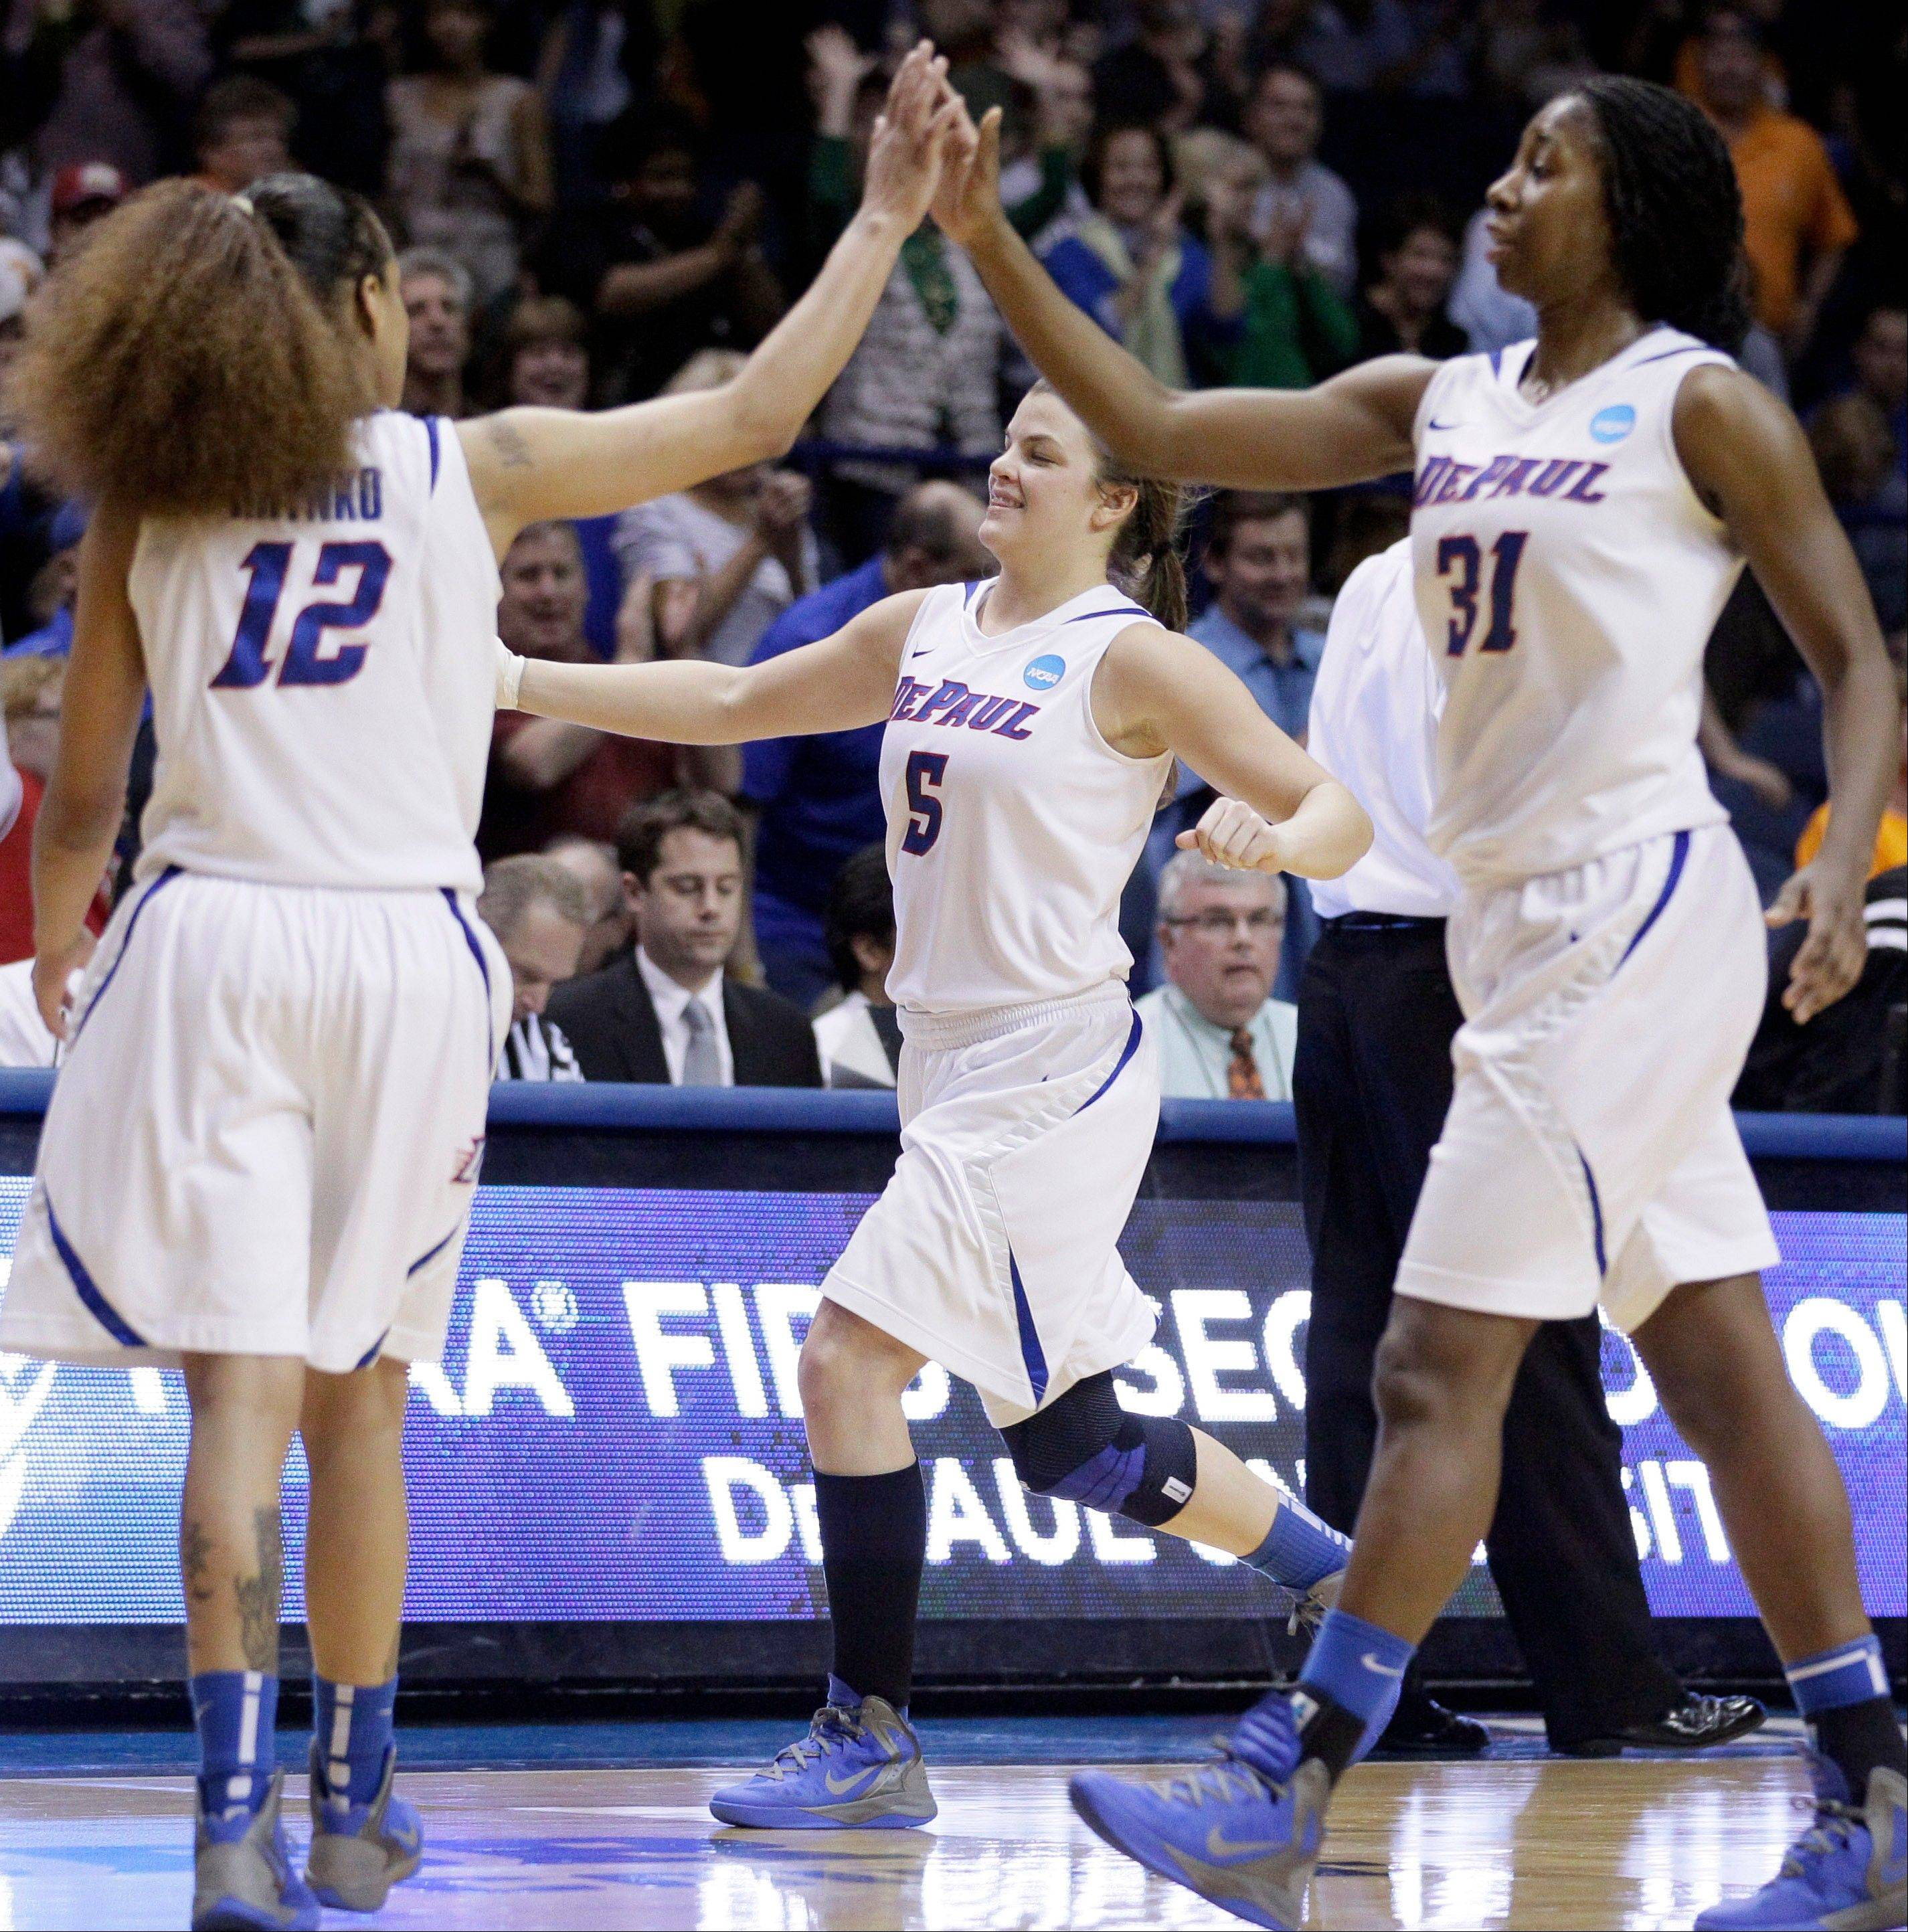 DePaul guard Anna Martin (5), guard Brittany Hrynko (12) and forward Jasmine Penny (31) celebrate after they defeated BYU 59-55 during an NCAA tournament first-round women's game.